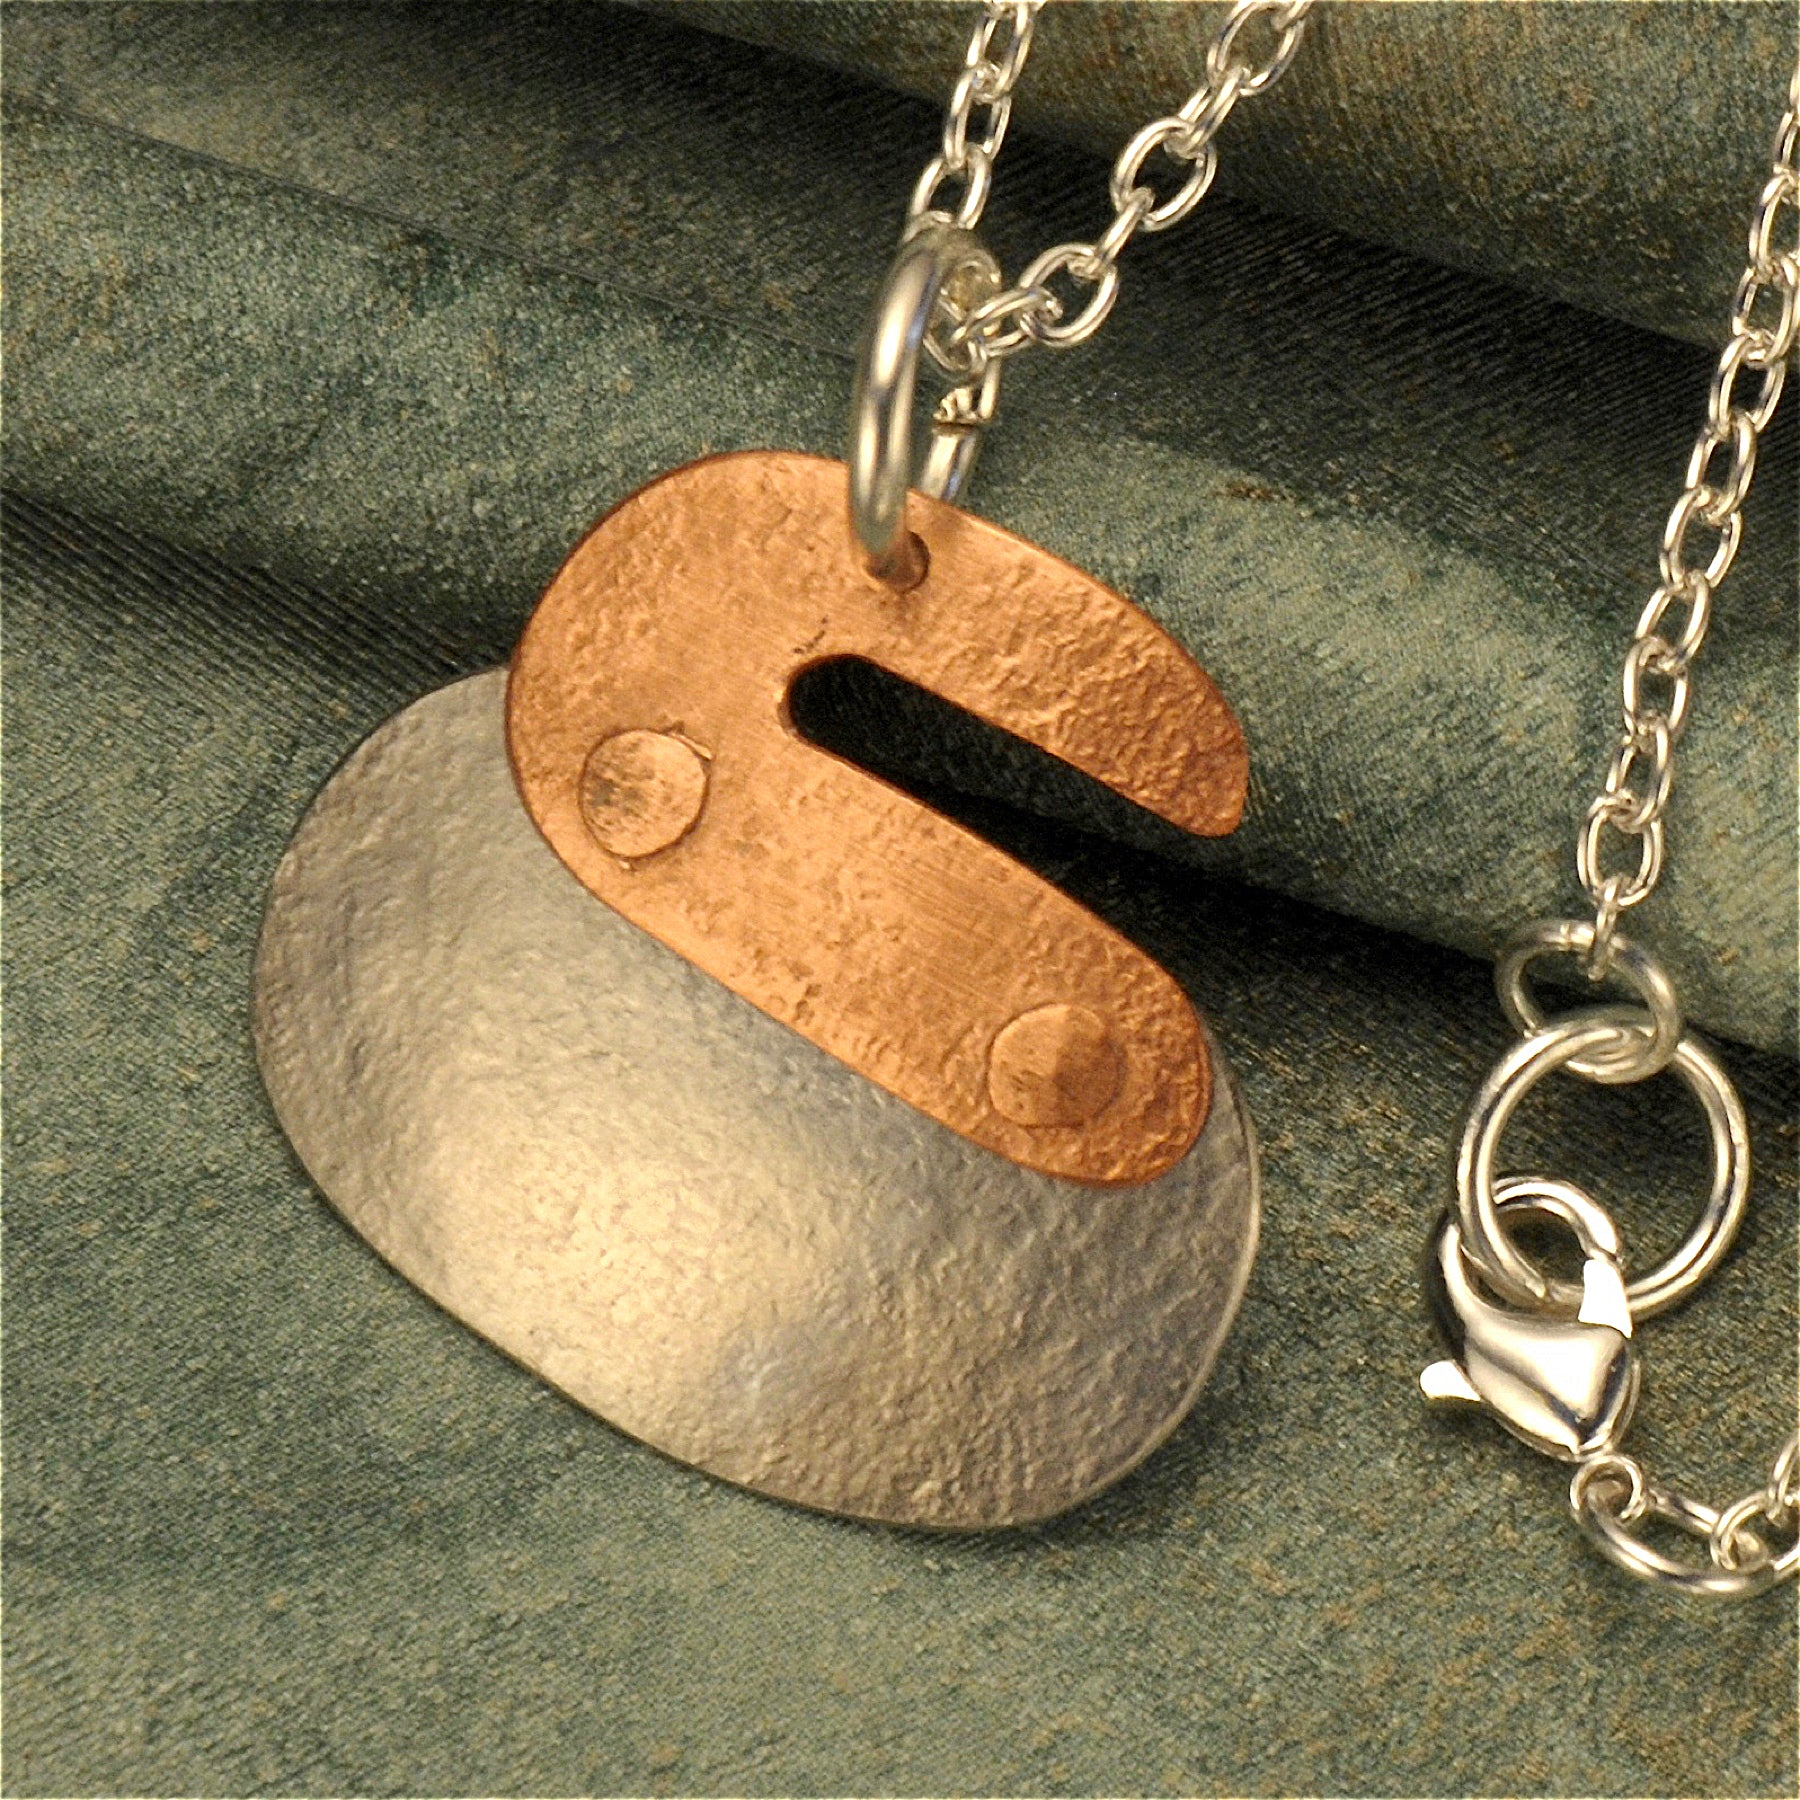 Curling rock two-tone necklace